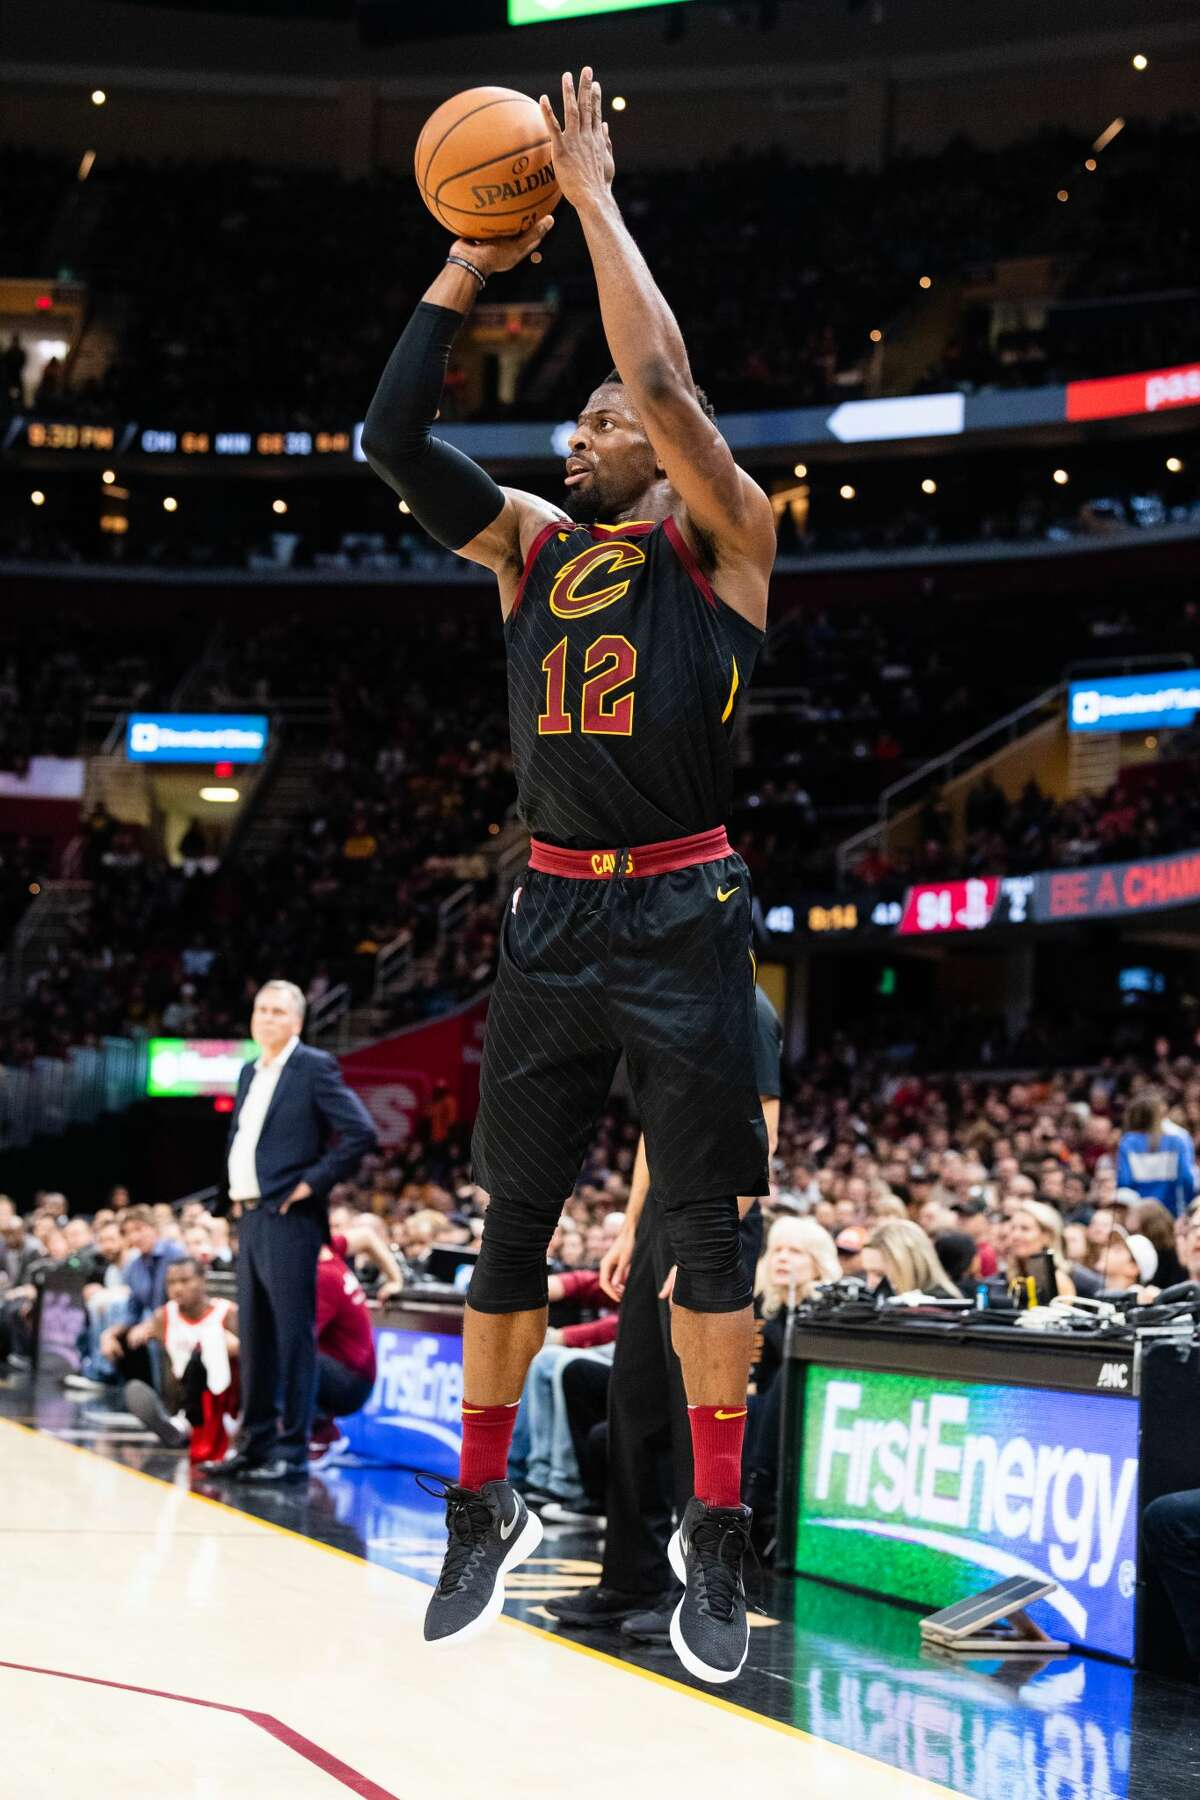 CLEVELAND, OH - NOVEMBER 24: David Nwaba #12 of the Cleveland Cavaliers shoots during the second half against the Houston Rockets at Quicken Loans Arena on November 24, 2018 in Cleveland, Ohio. The Cavaliers defeated the Rockets 117-108. NOTE TO USER: User expressly acknowledges and agrees that, by downloading and/or using this photograph, user is consenting to the terms and conditions of the Getty Images License Agreement. (Photo by Jason Miller/Getty Images)